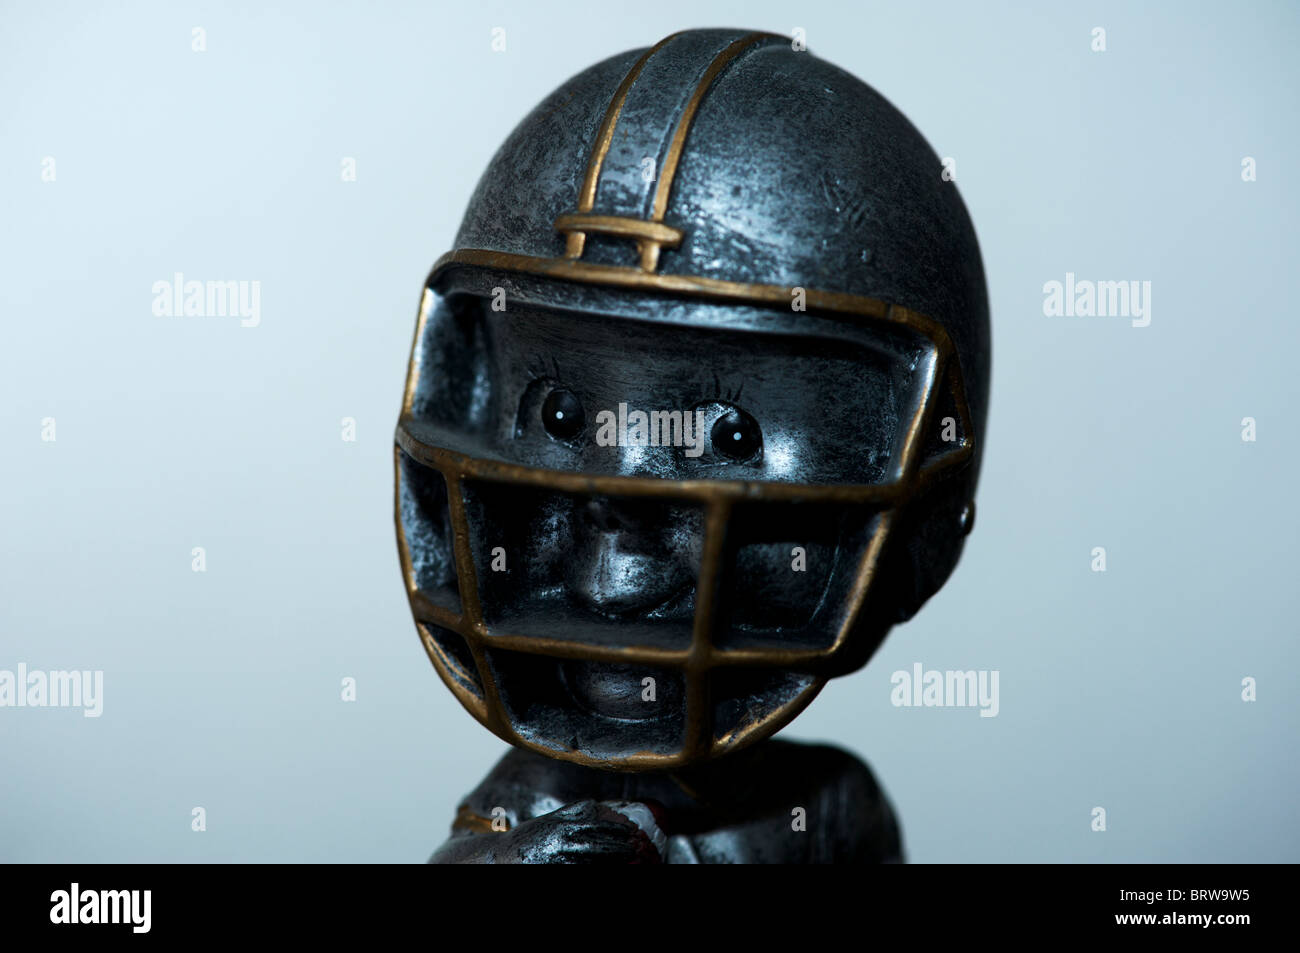 Youth football player figurine - Stock Image